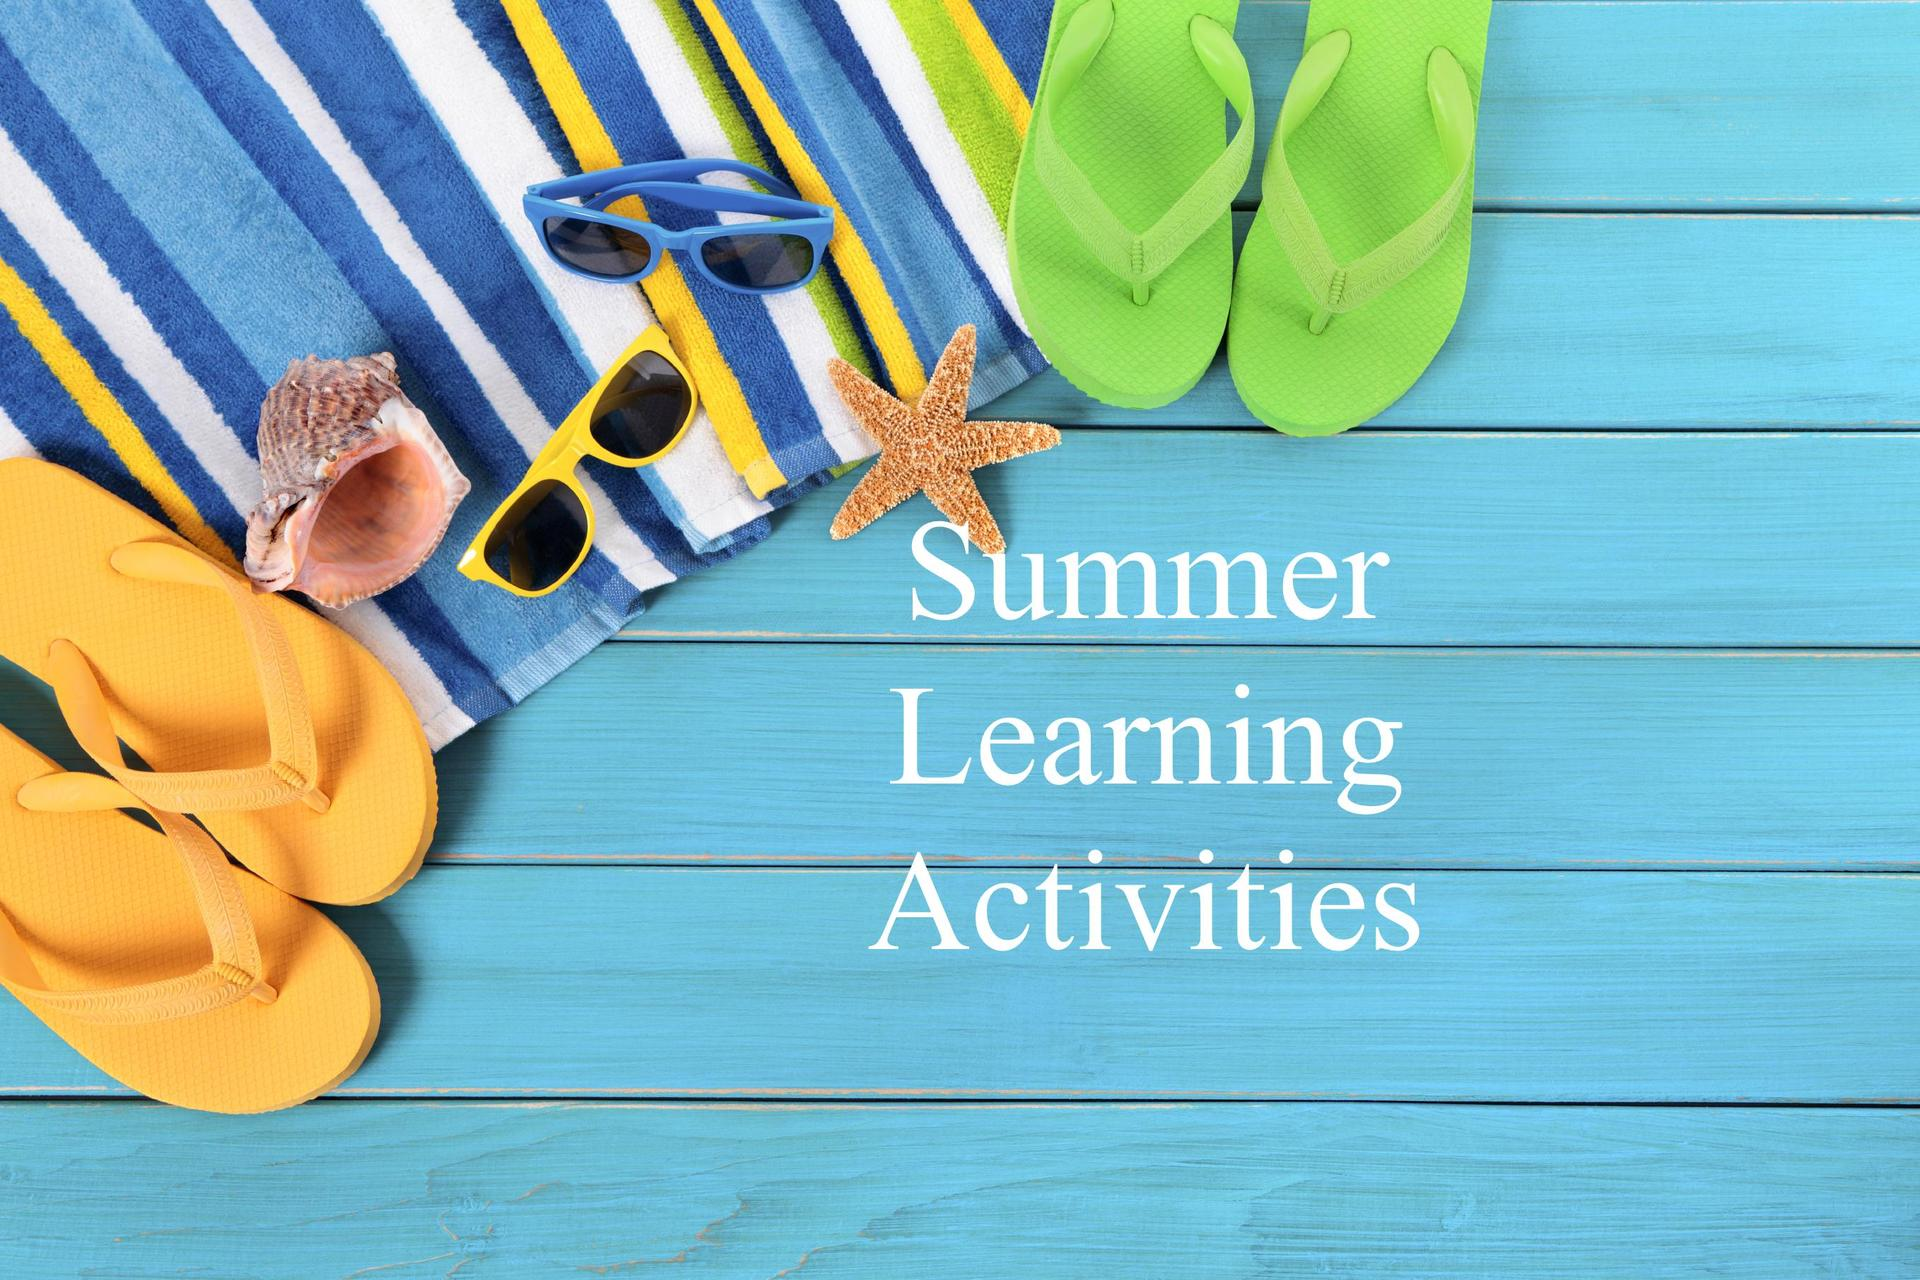 summer learning activities icon/link